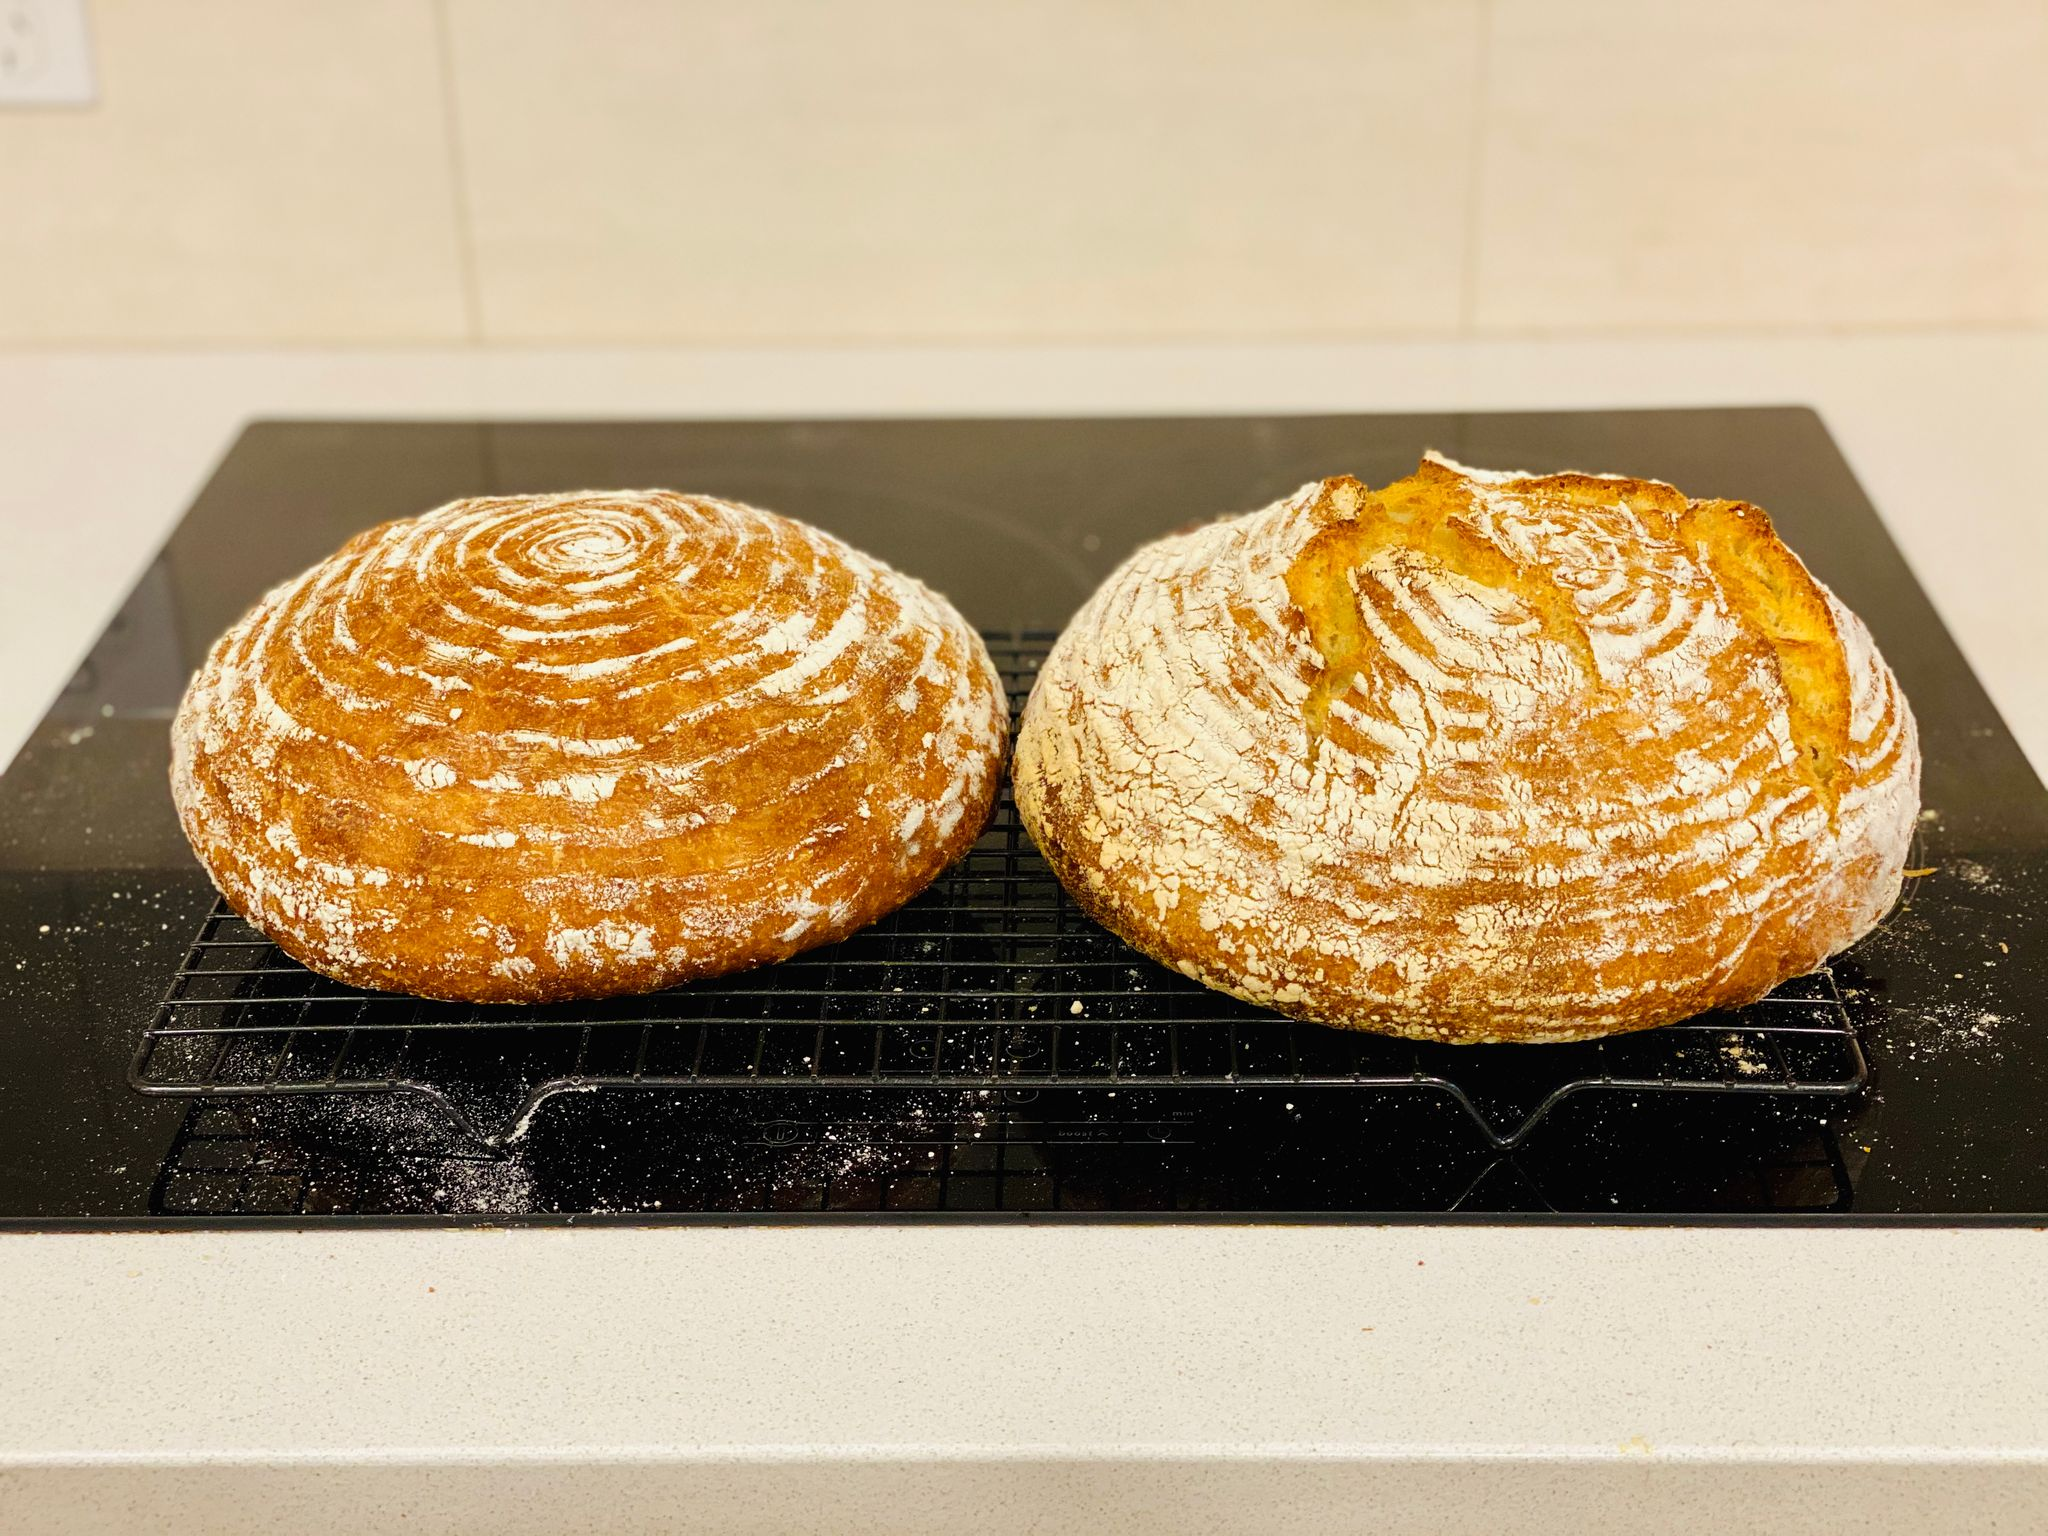 Two round golden loaves of bread sitting on a cooling rack.